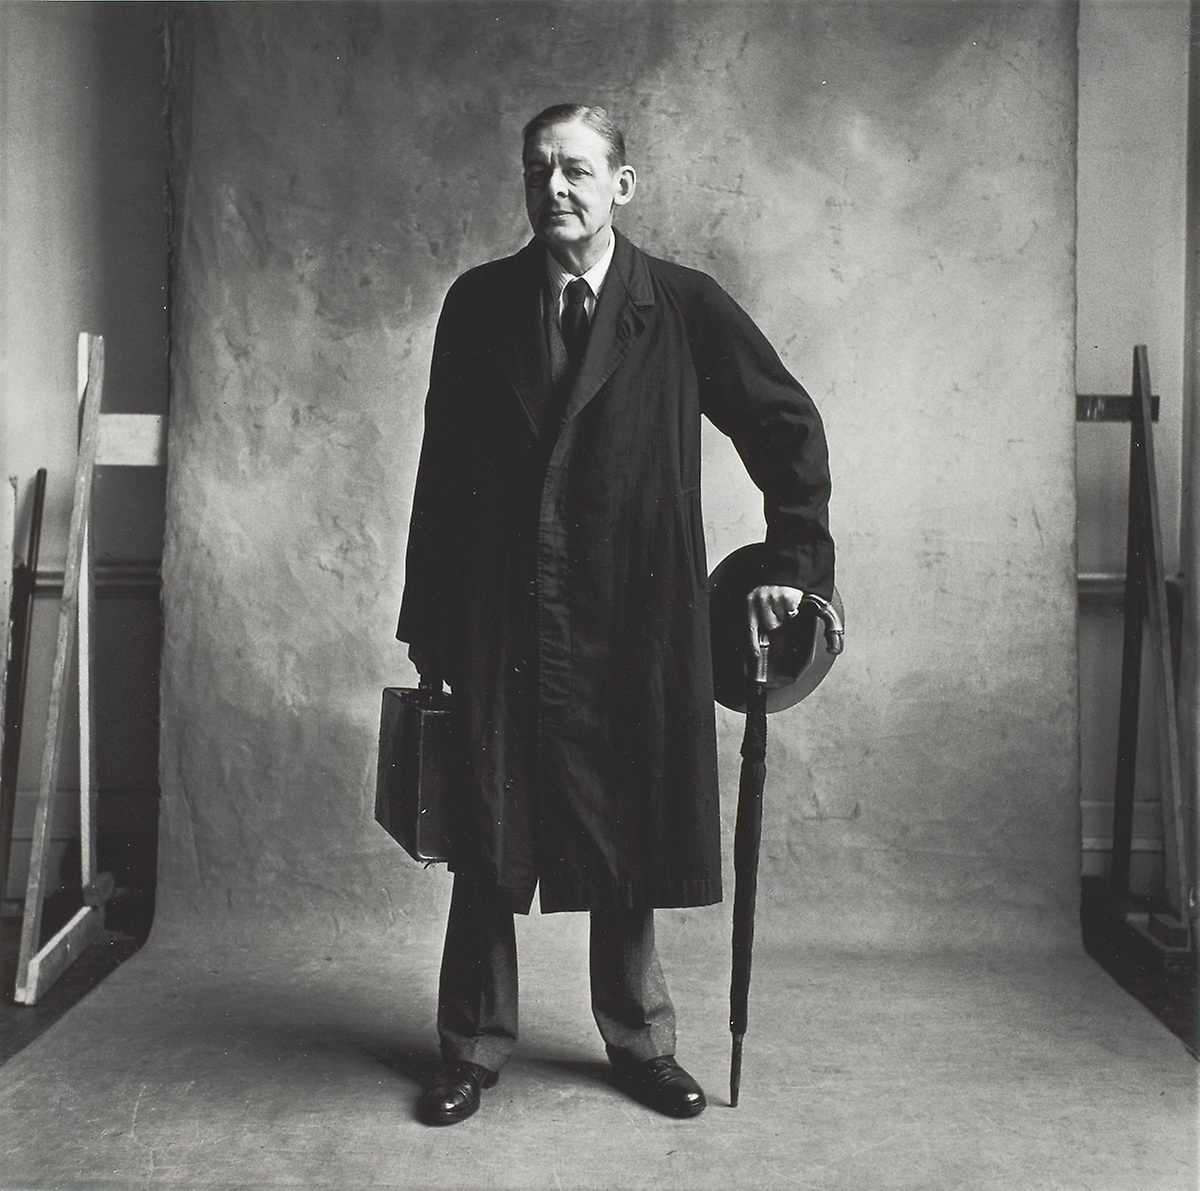 T. S. Eliot (C), London, Irving Penn, 1950, printed November 1998. Copyright © The Irving Penn Foundation. From the Collection of The Art Institute of Chicago.  October 1:  More than One Waste Land.